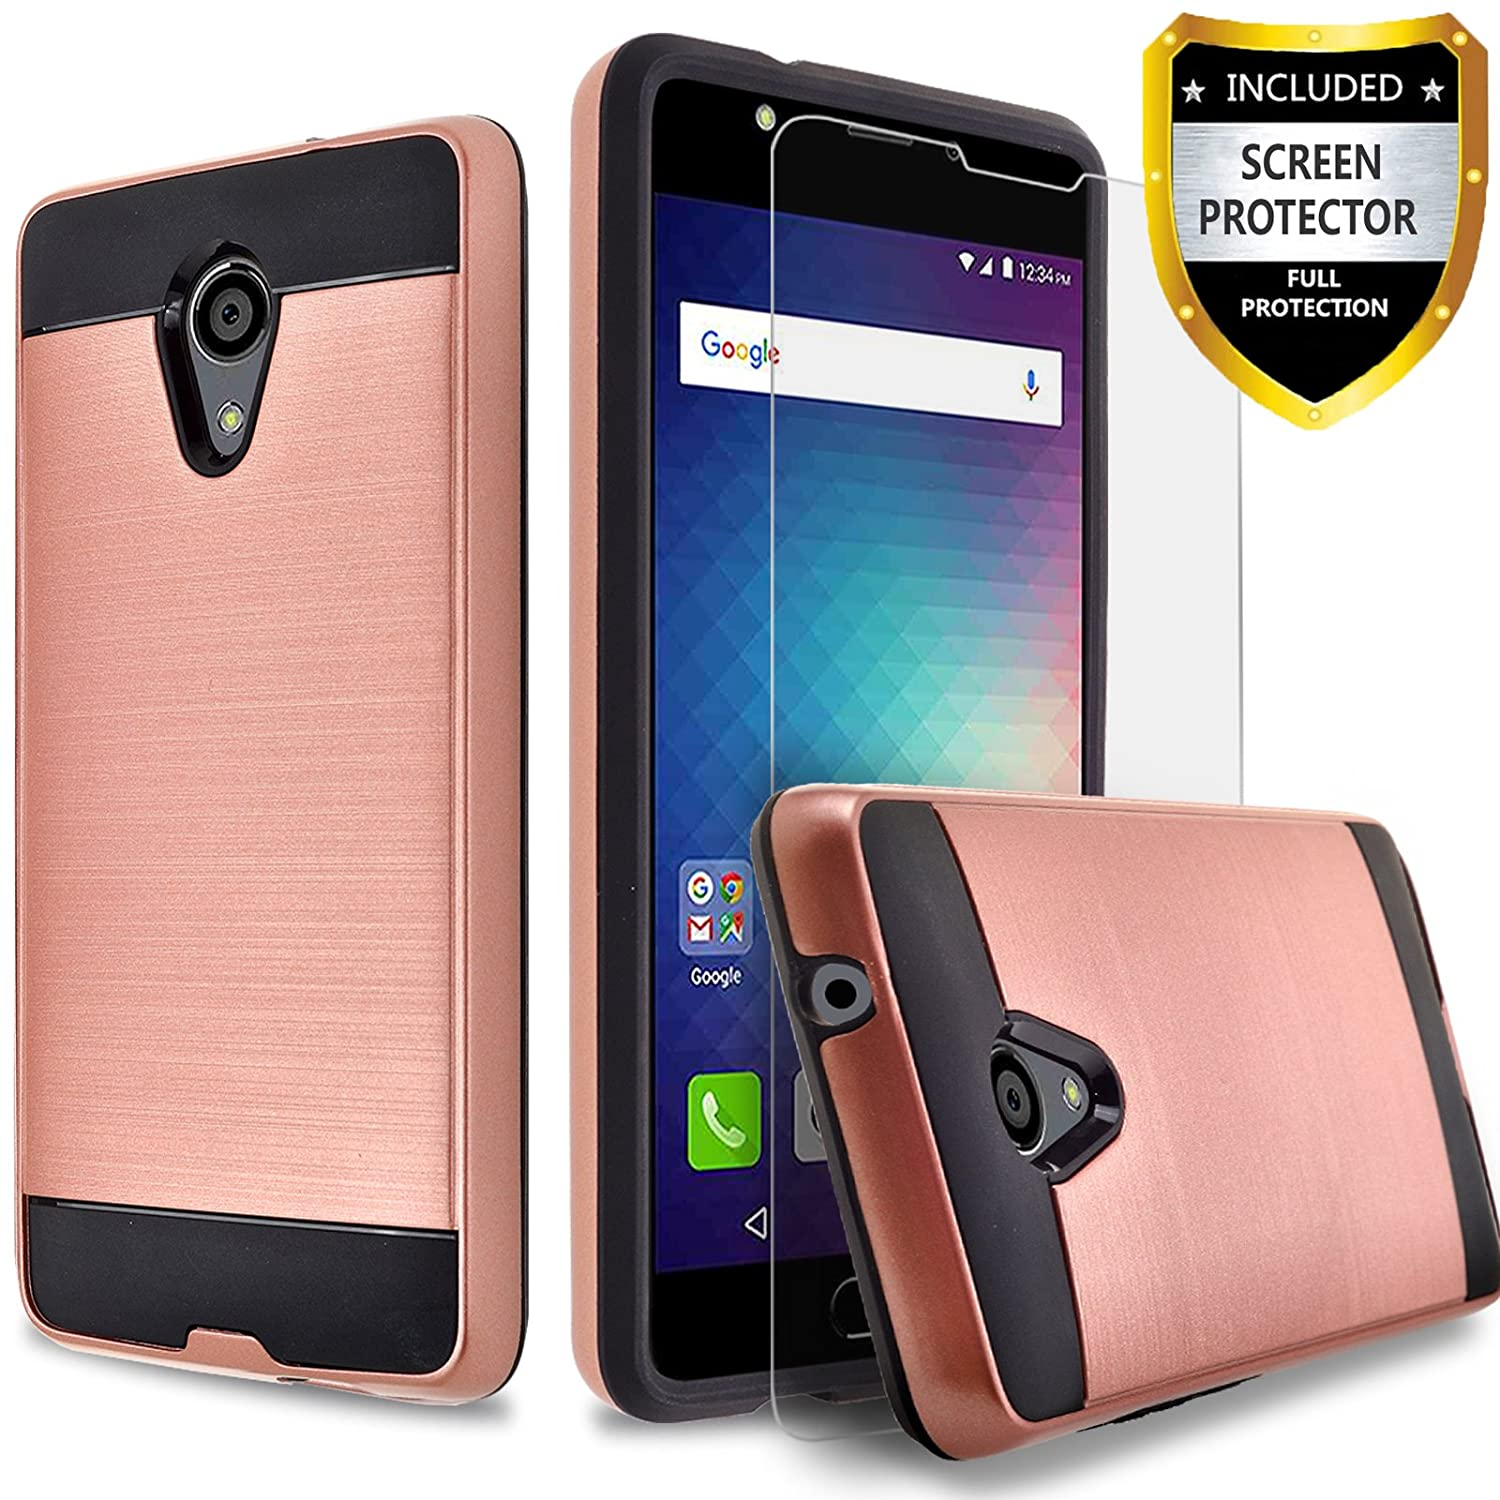 BLU Advance 5.5 HD Case, BLU Grand 5.5 HD Case, Circlemalls 2-Piece Style Hybrid Shockproof Hard Case Cover With [Premium Screen Protector] And Touch Screen Pen (Rose Gold)